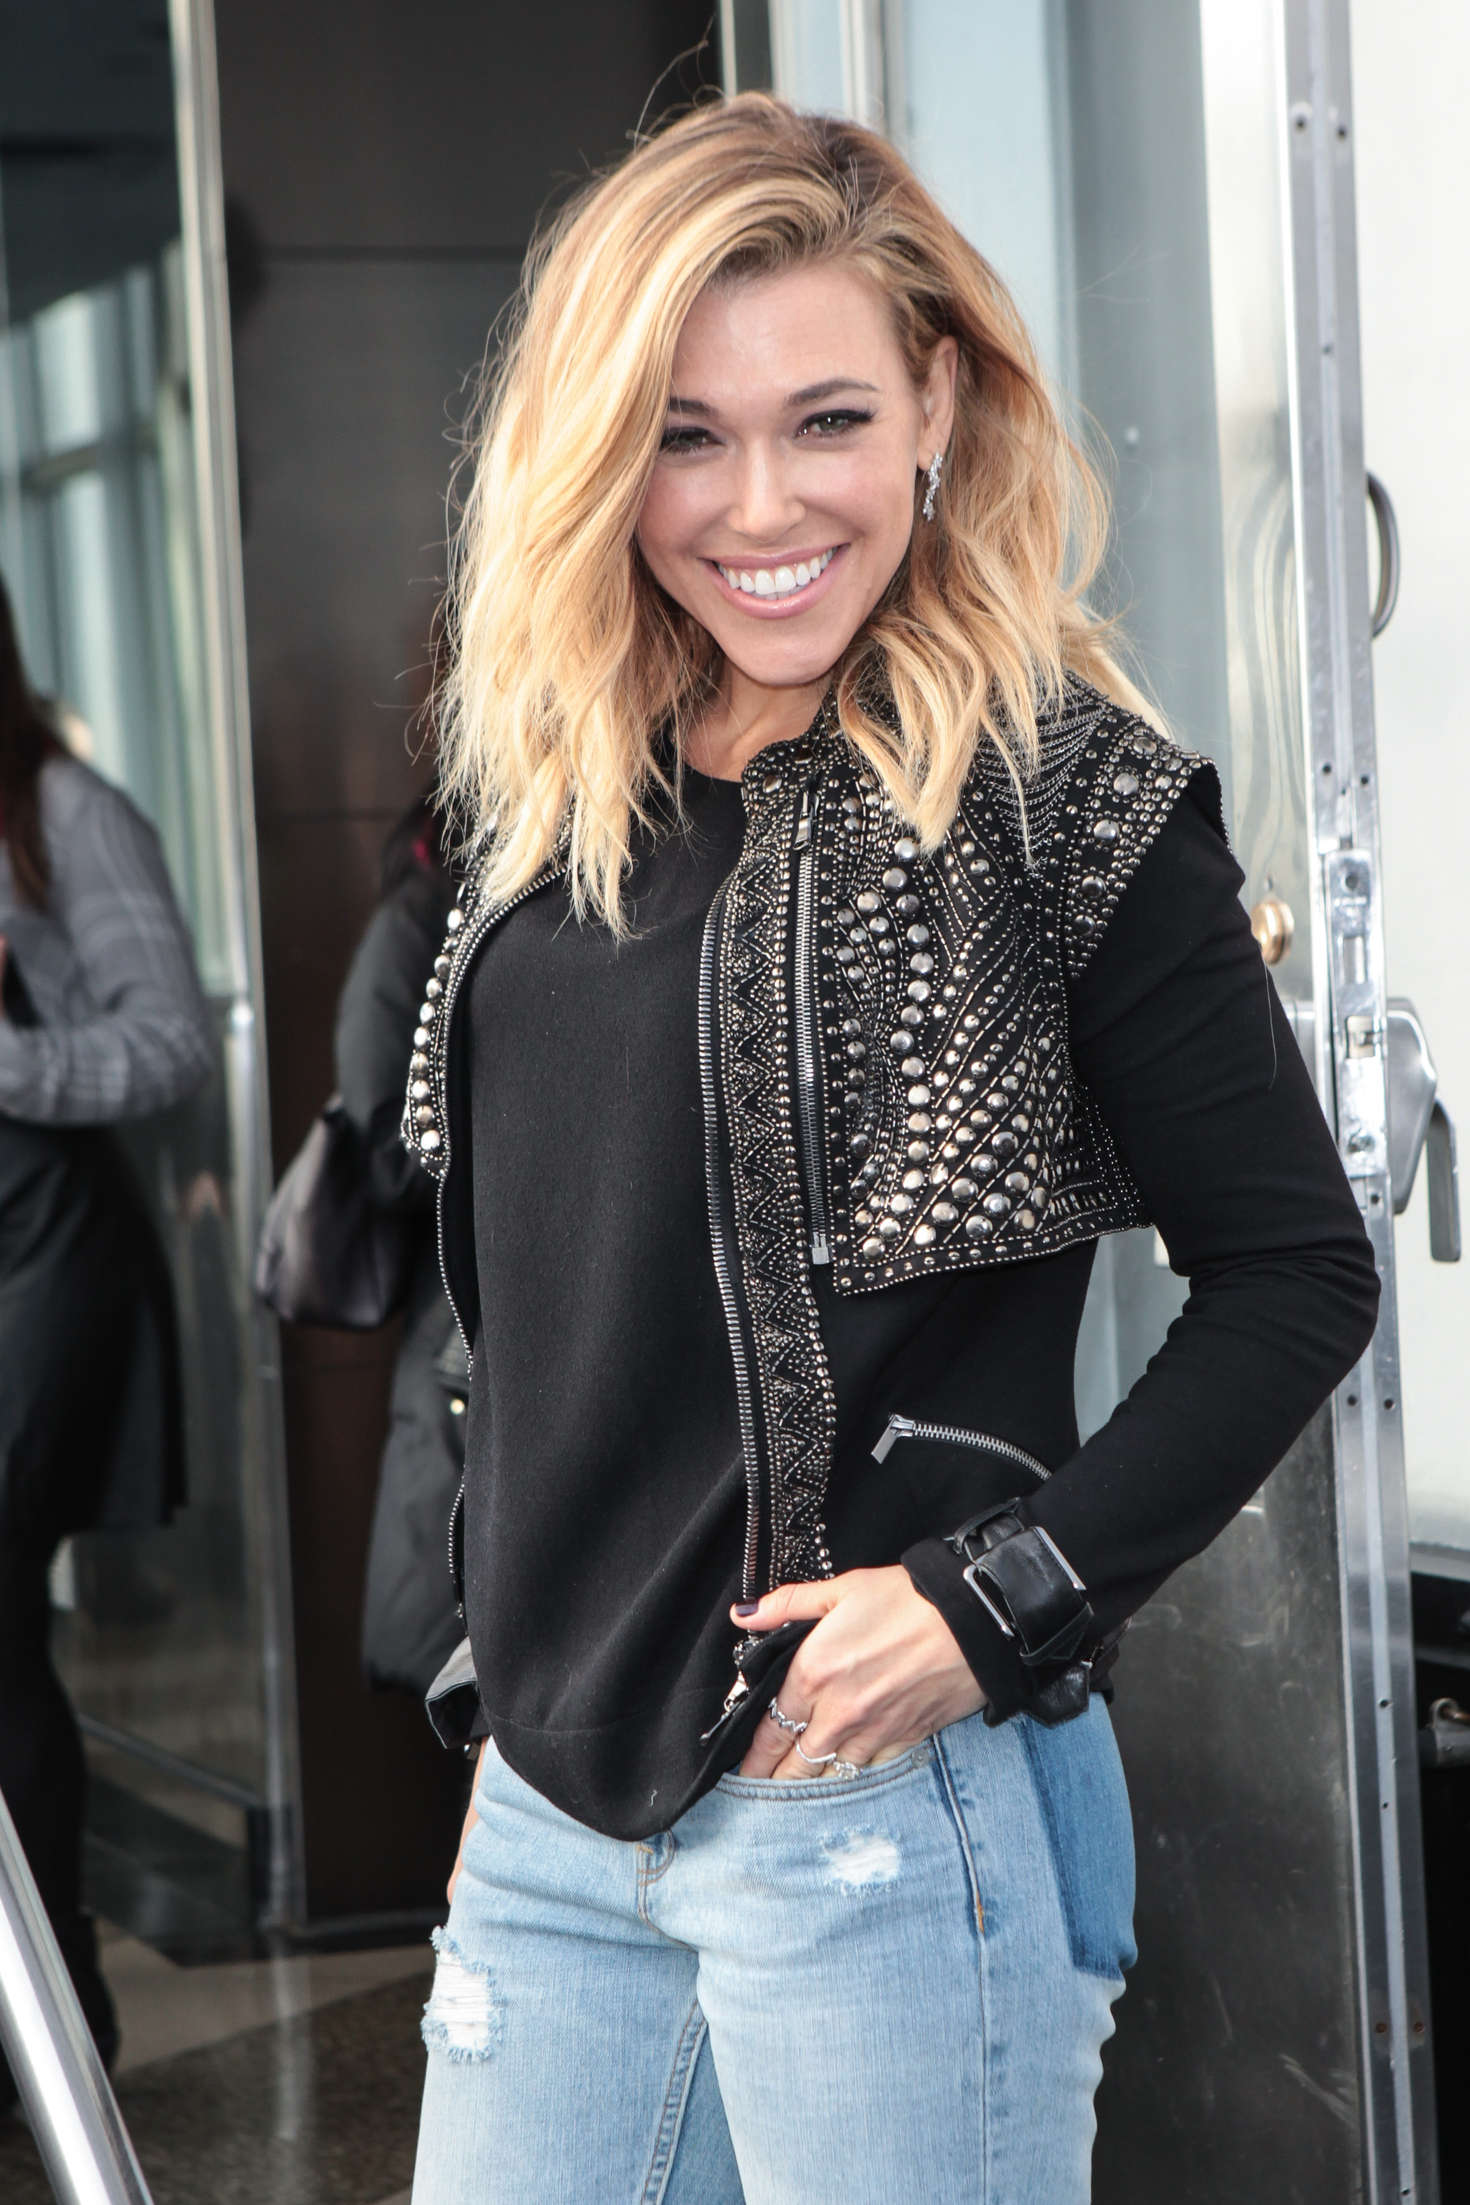 Christian Wallpaper Fall Rachel Platten Promotes Wildfire At The Empire State